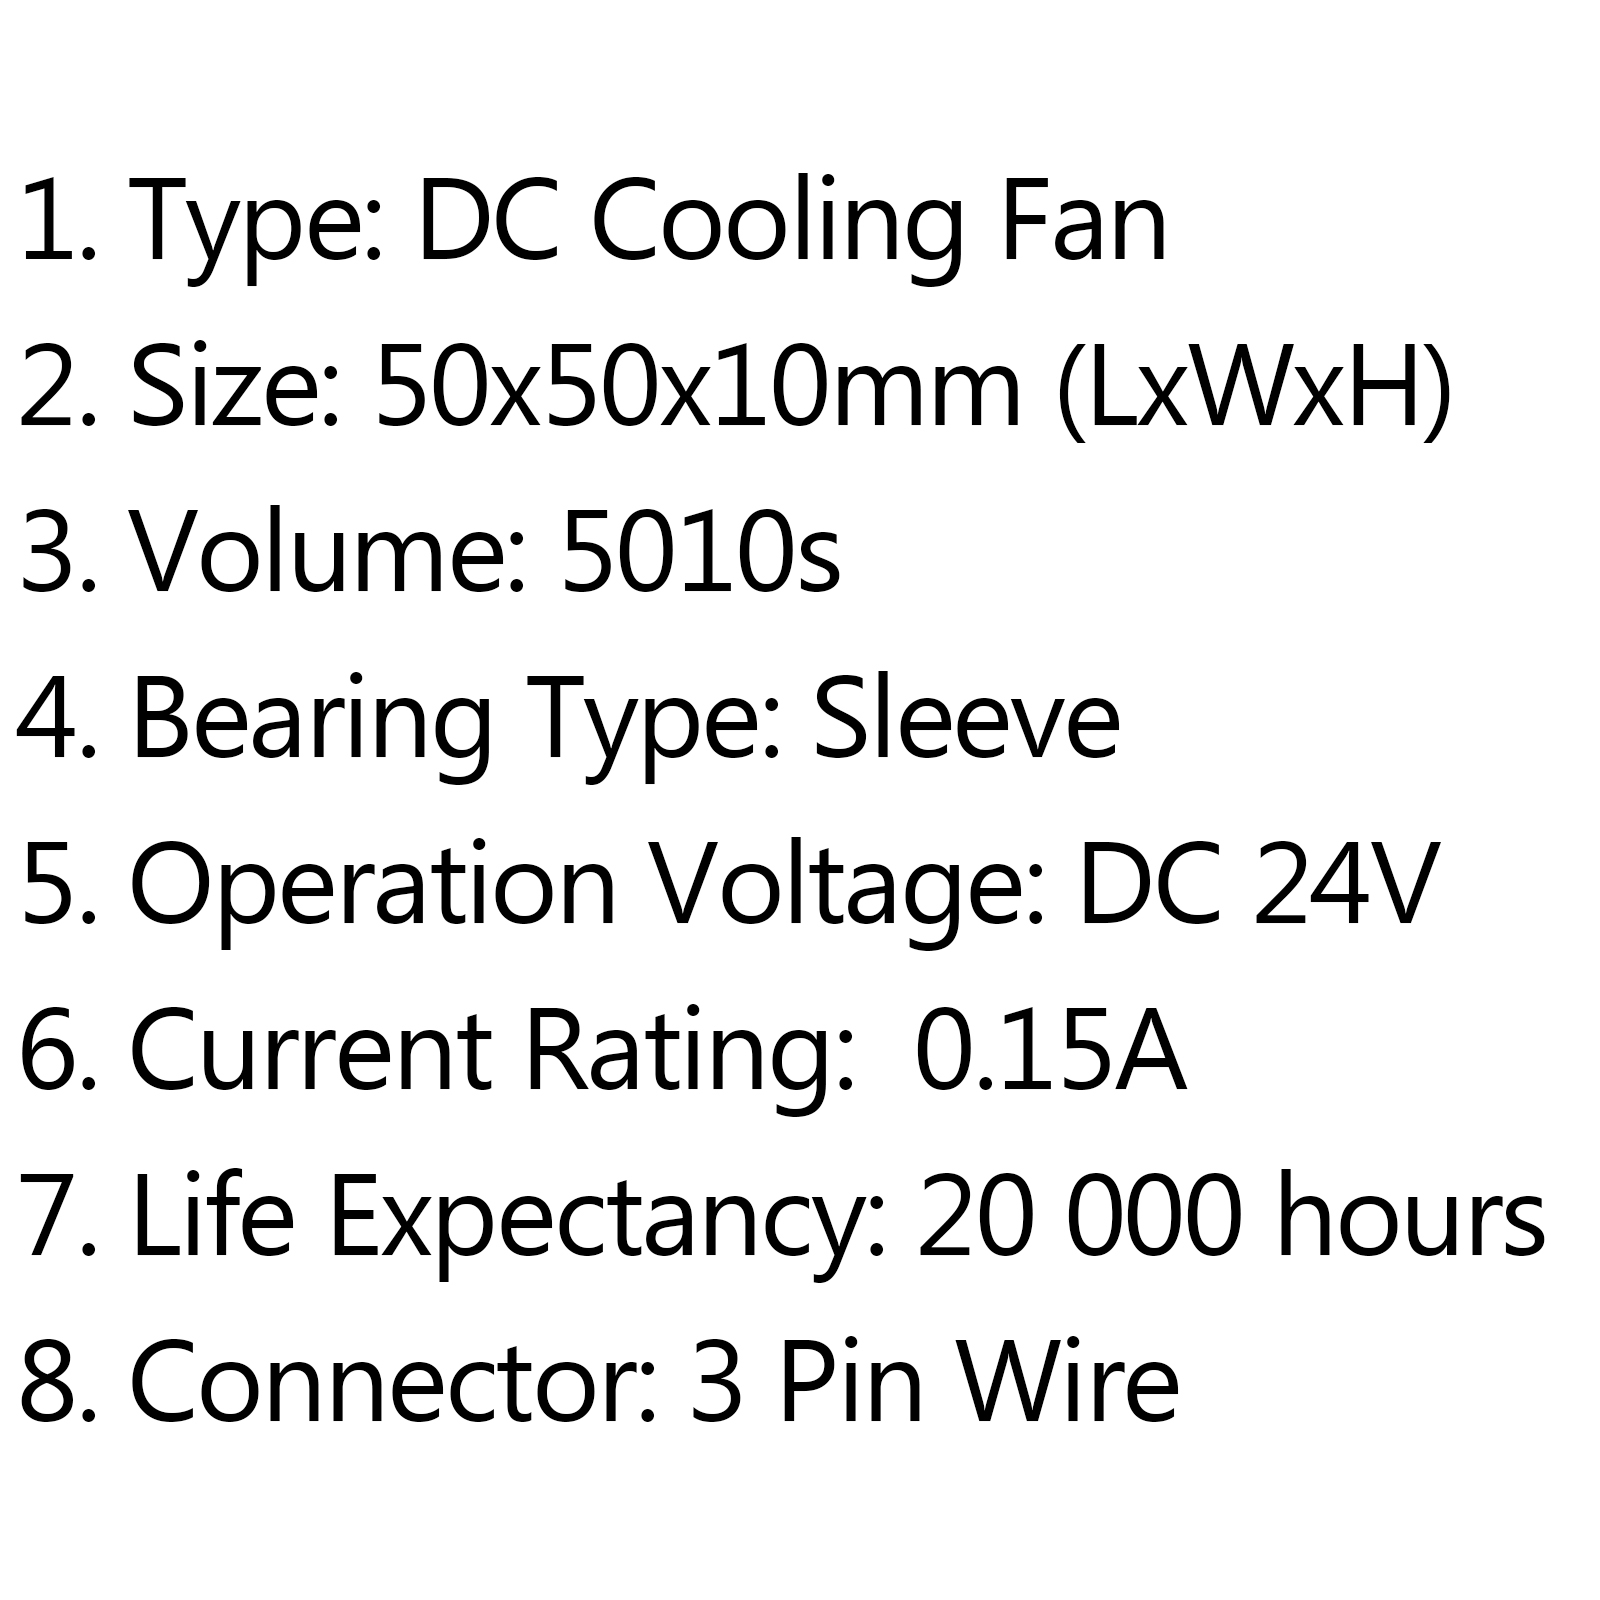 Dc brushless cooling pc computer fan 5v 24v 5010 5010s 50x50x10mm 3 size 50x50x10mm lxwxh 3 volume 5010 4 operation voltage dc 5v 5 current rating 016a 6 life expectancy 20 000 hours 7 connector 3 pin wire greentooth Choice Image